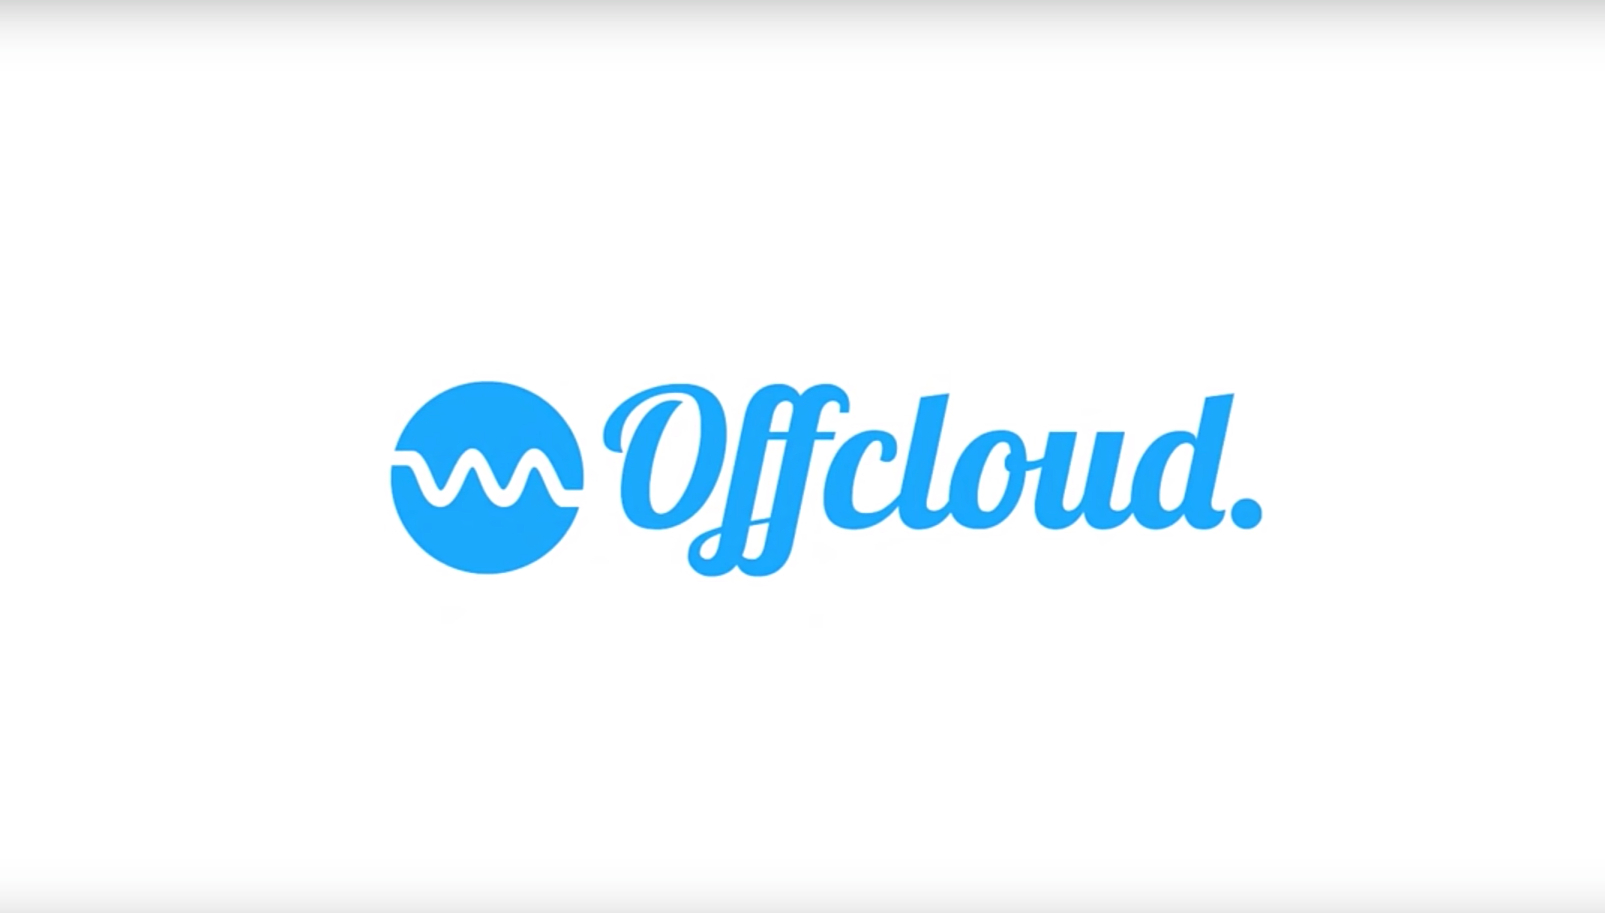 Cloud-based download manager Offcloud makes it easy to access and download your favorite content online.